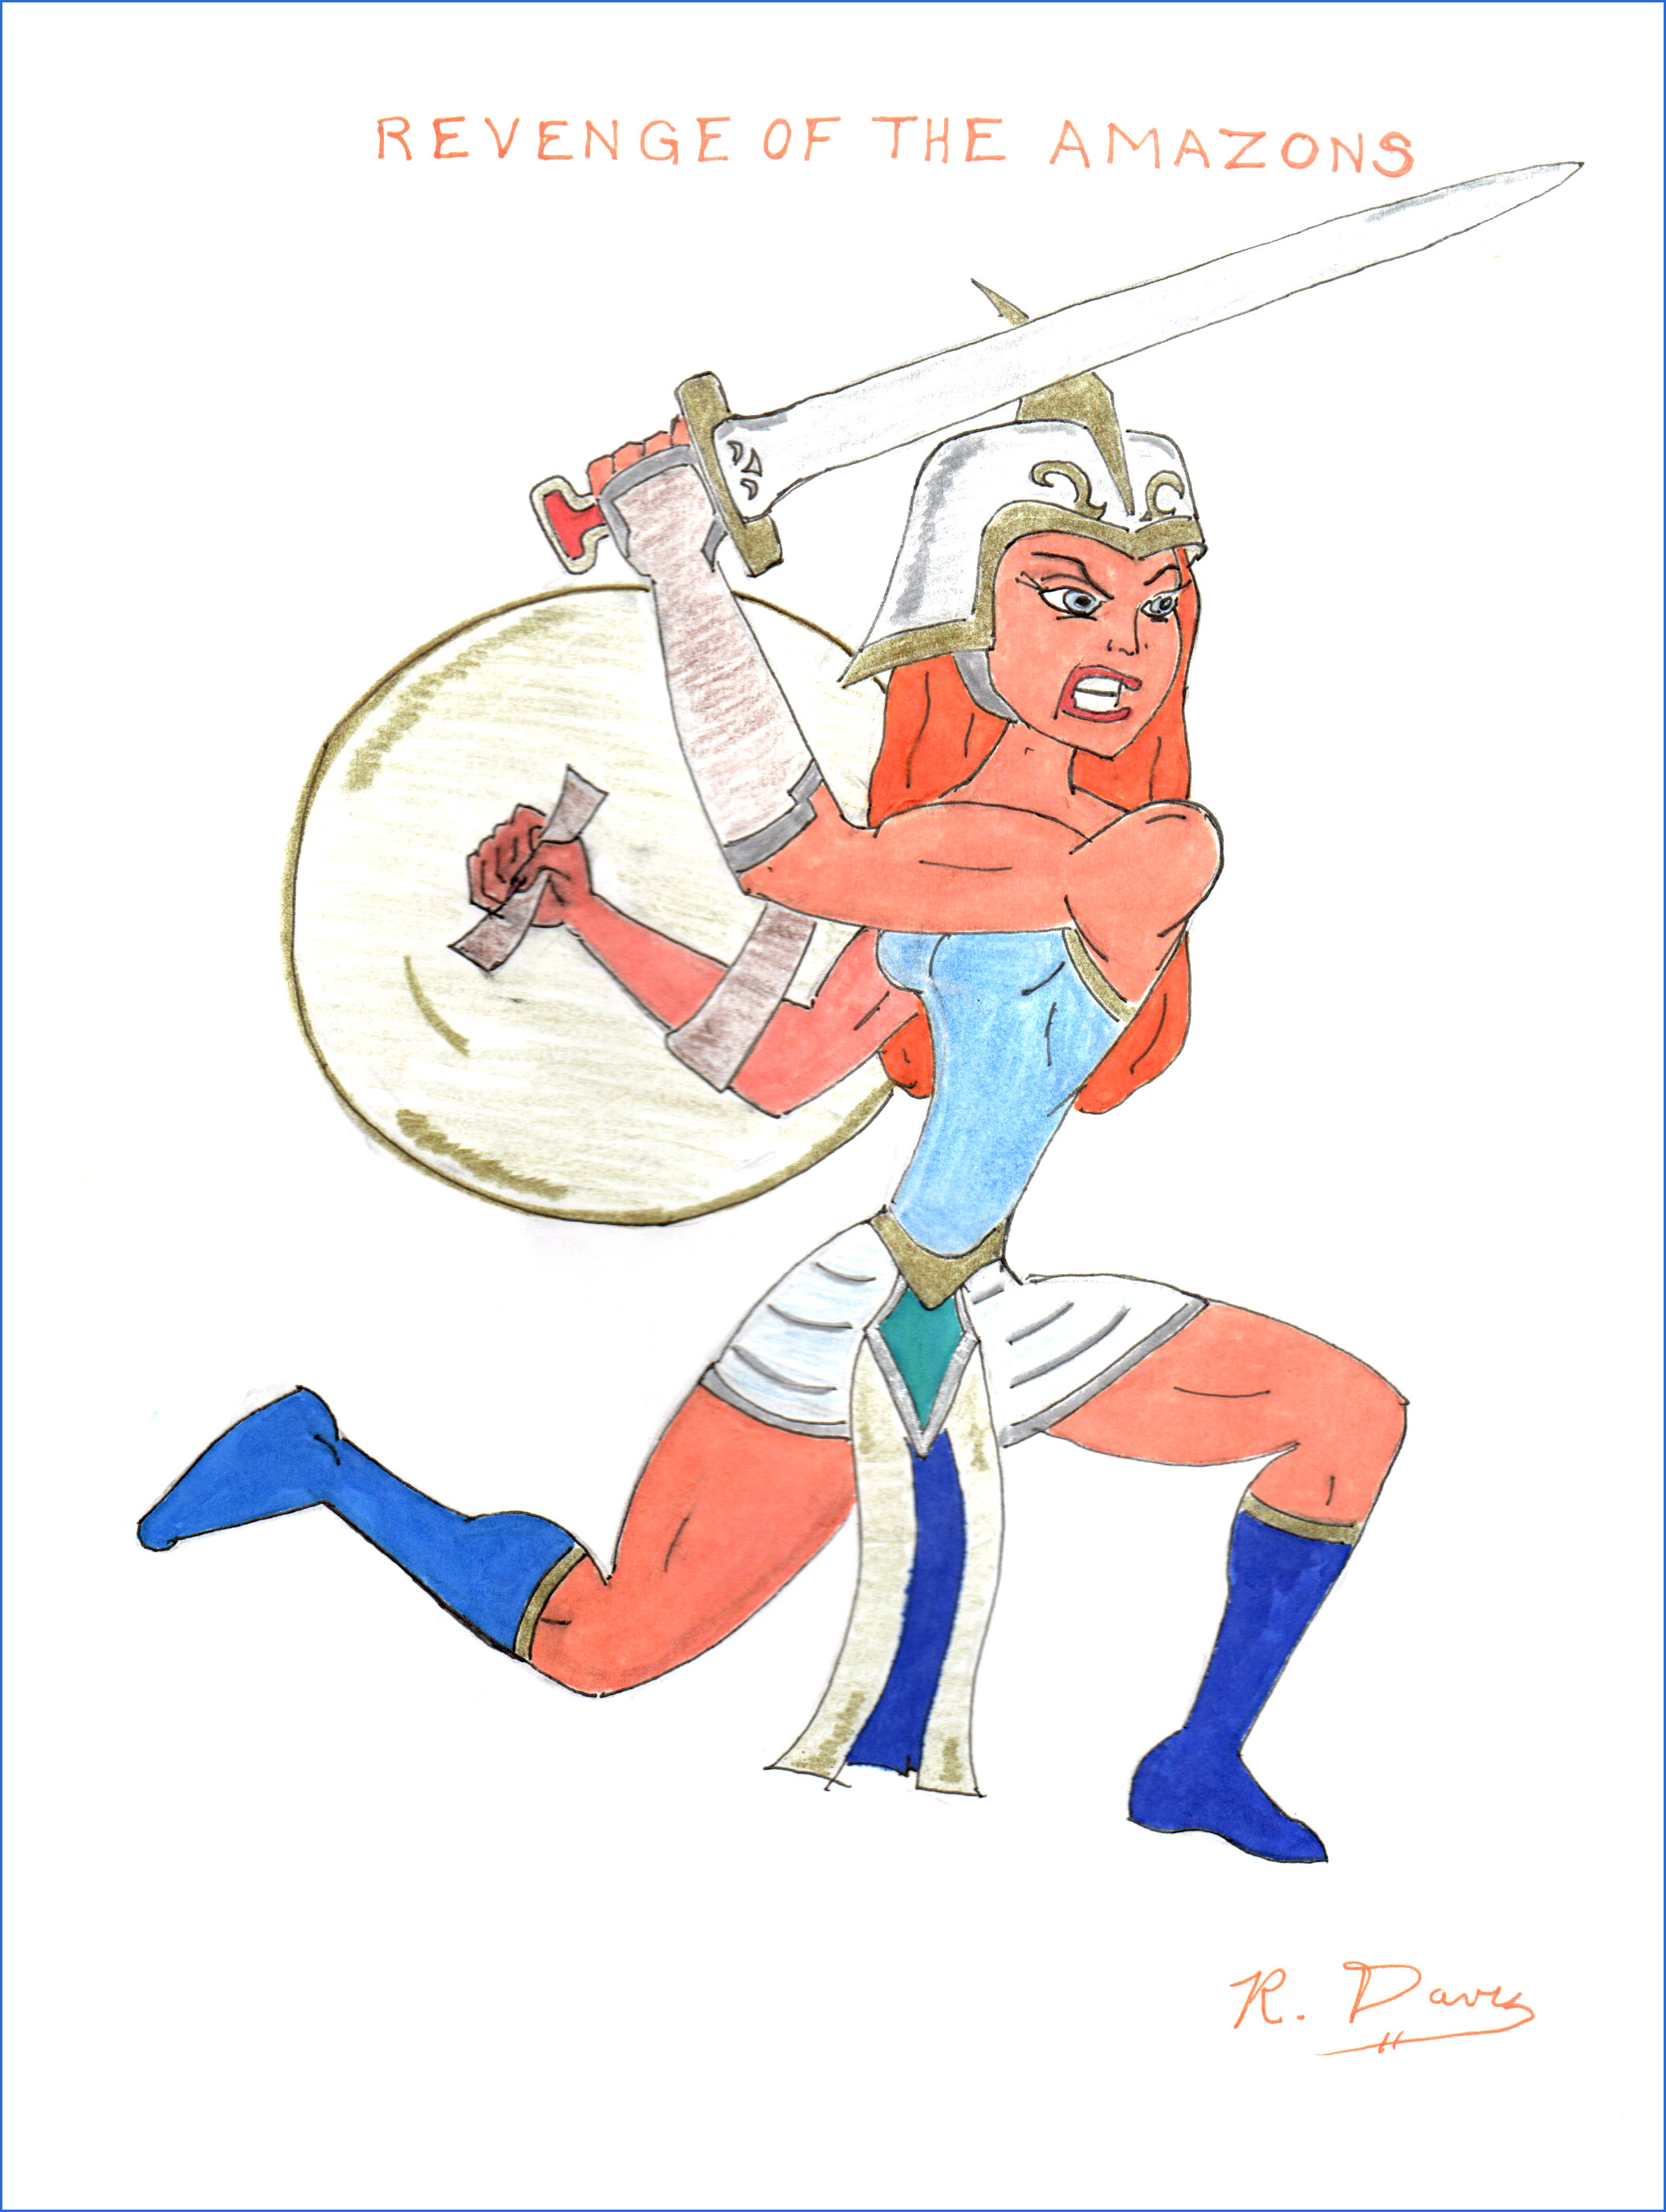 Revenge of the Amazons Ron Davis Markers on 8-1/2 x 11 paper - print $20